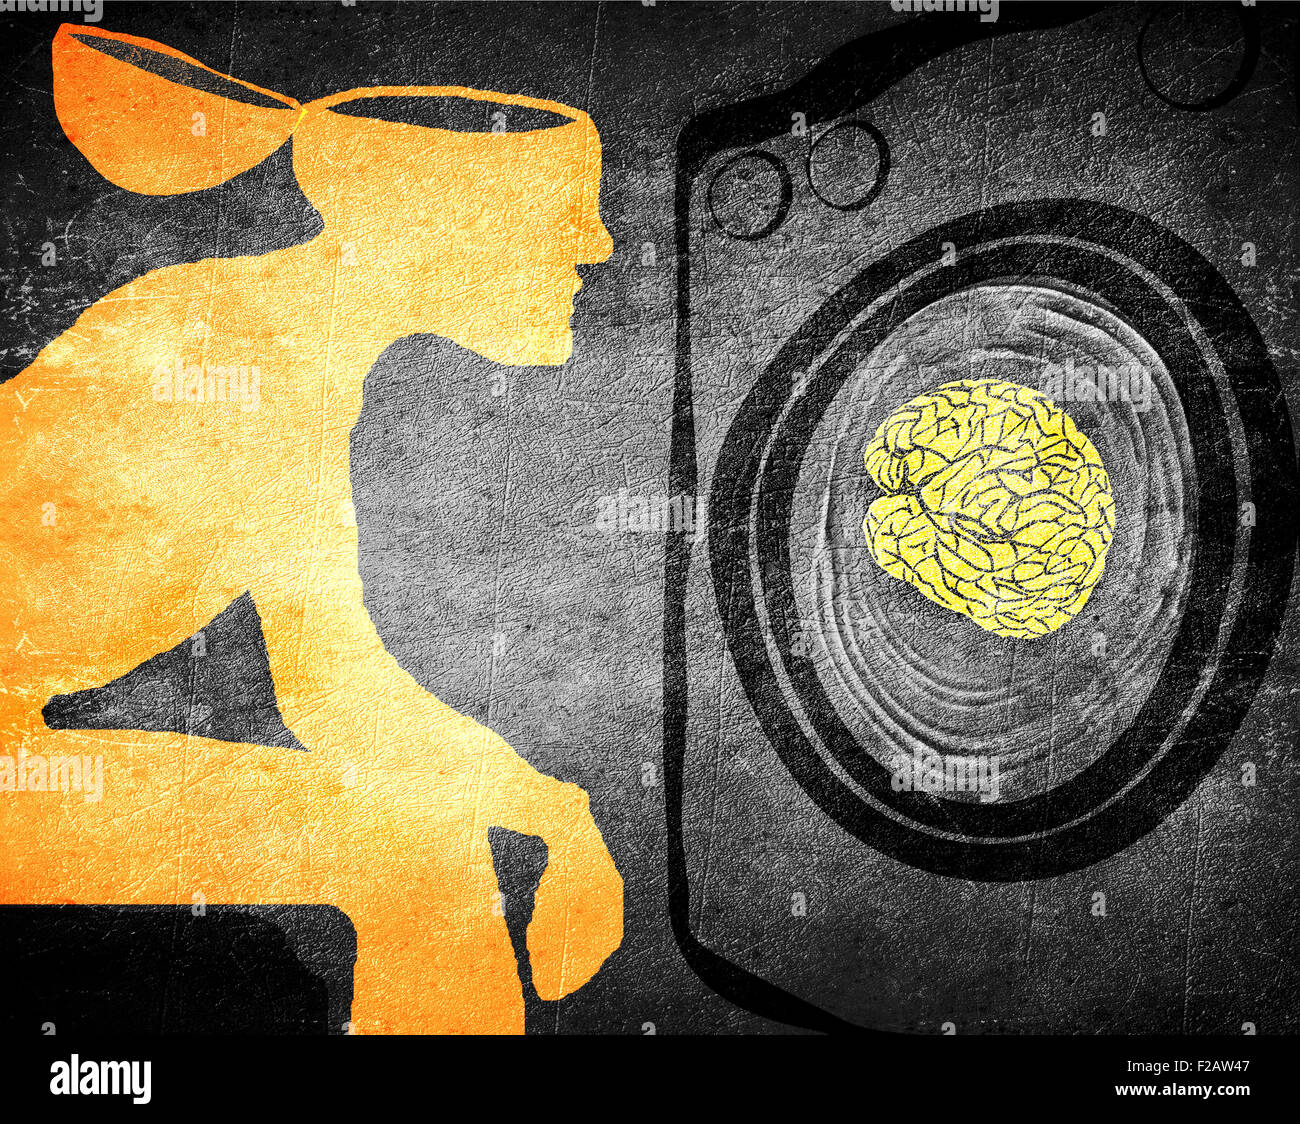 washing brain illustration concept Stock Photo